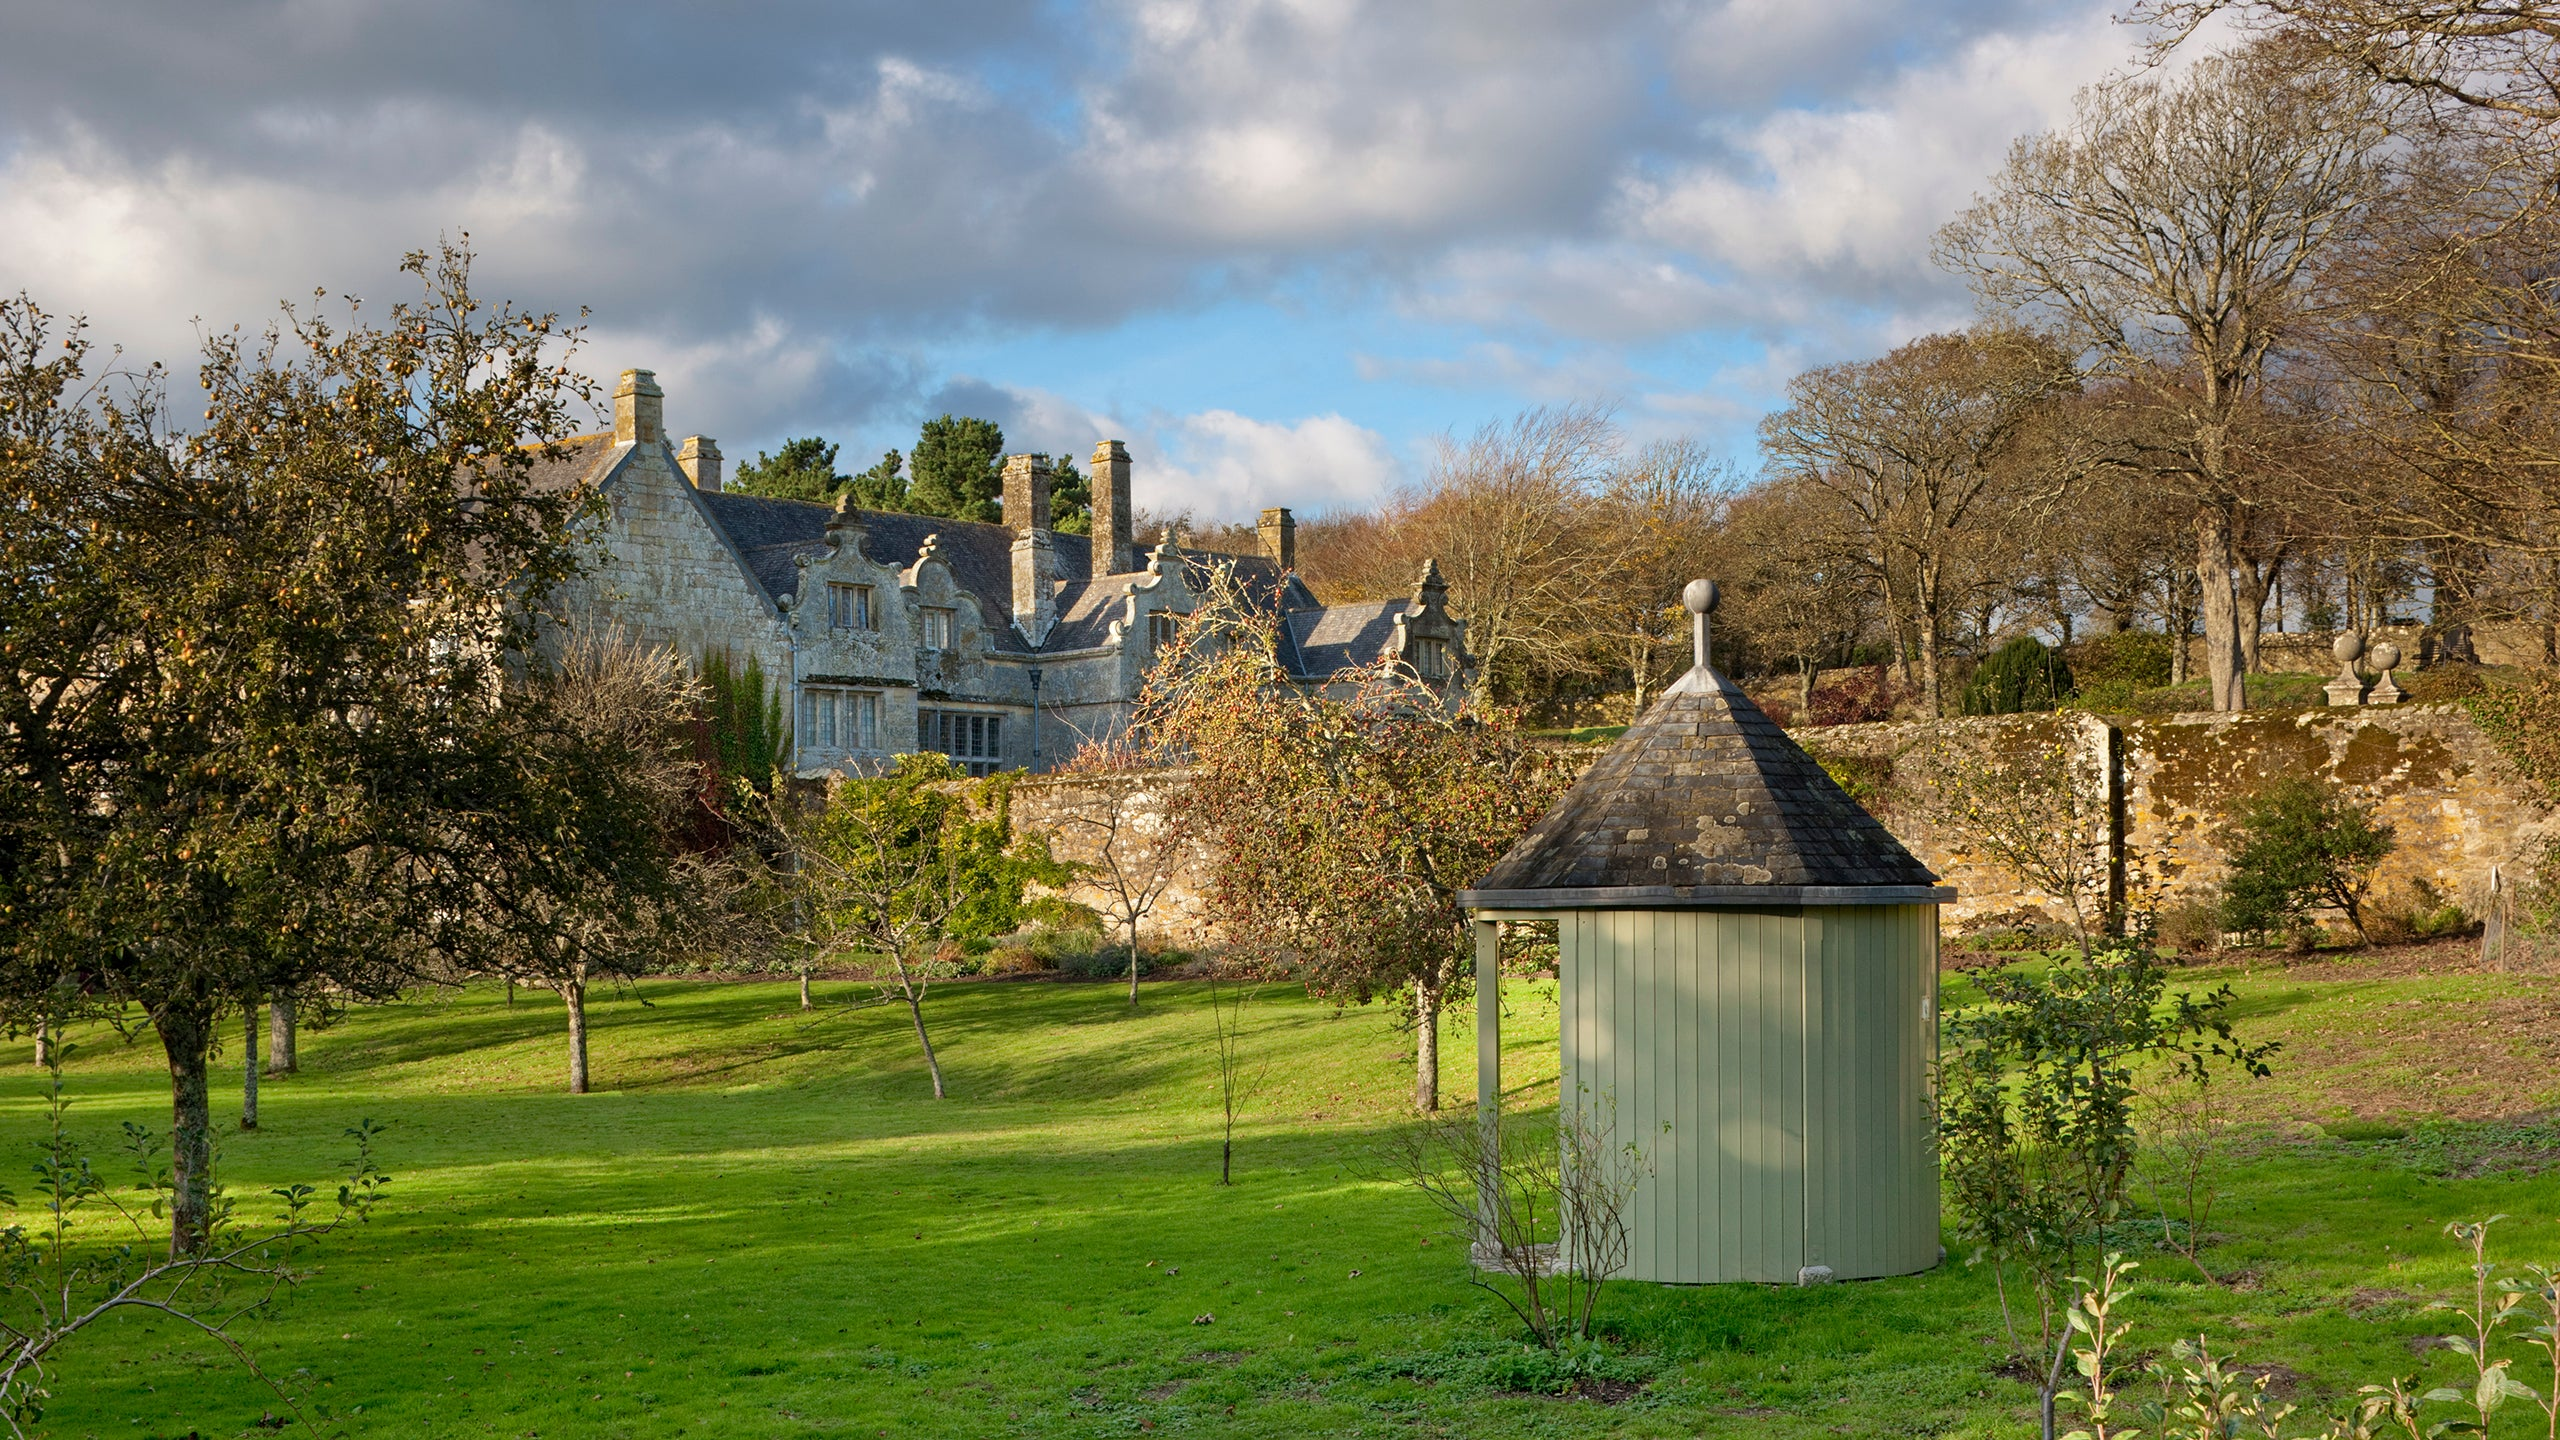 View of the house from the orchard at Trerice, Cornwall